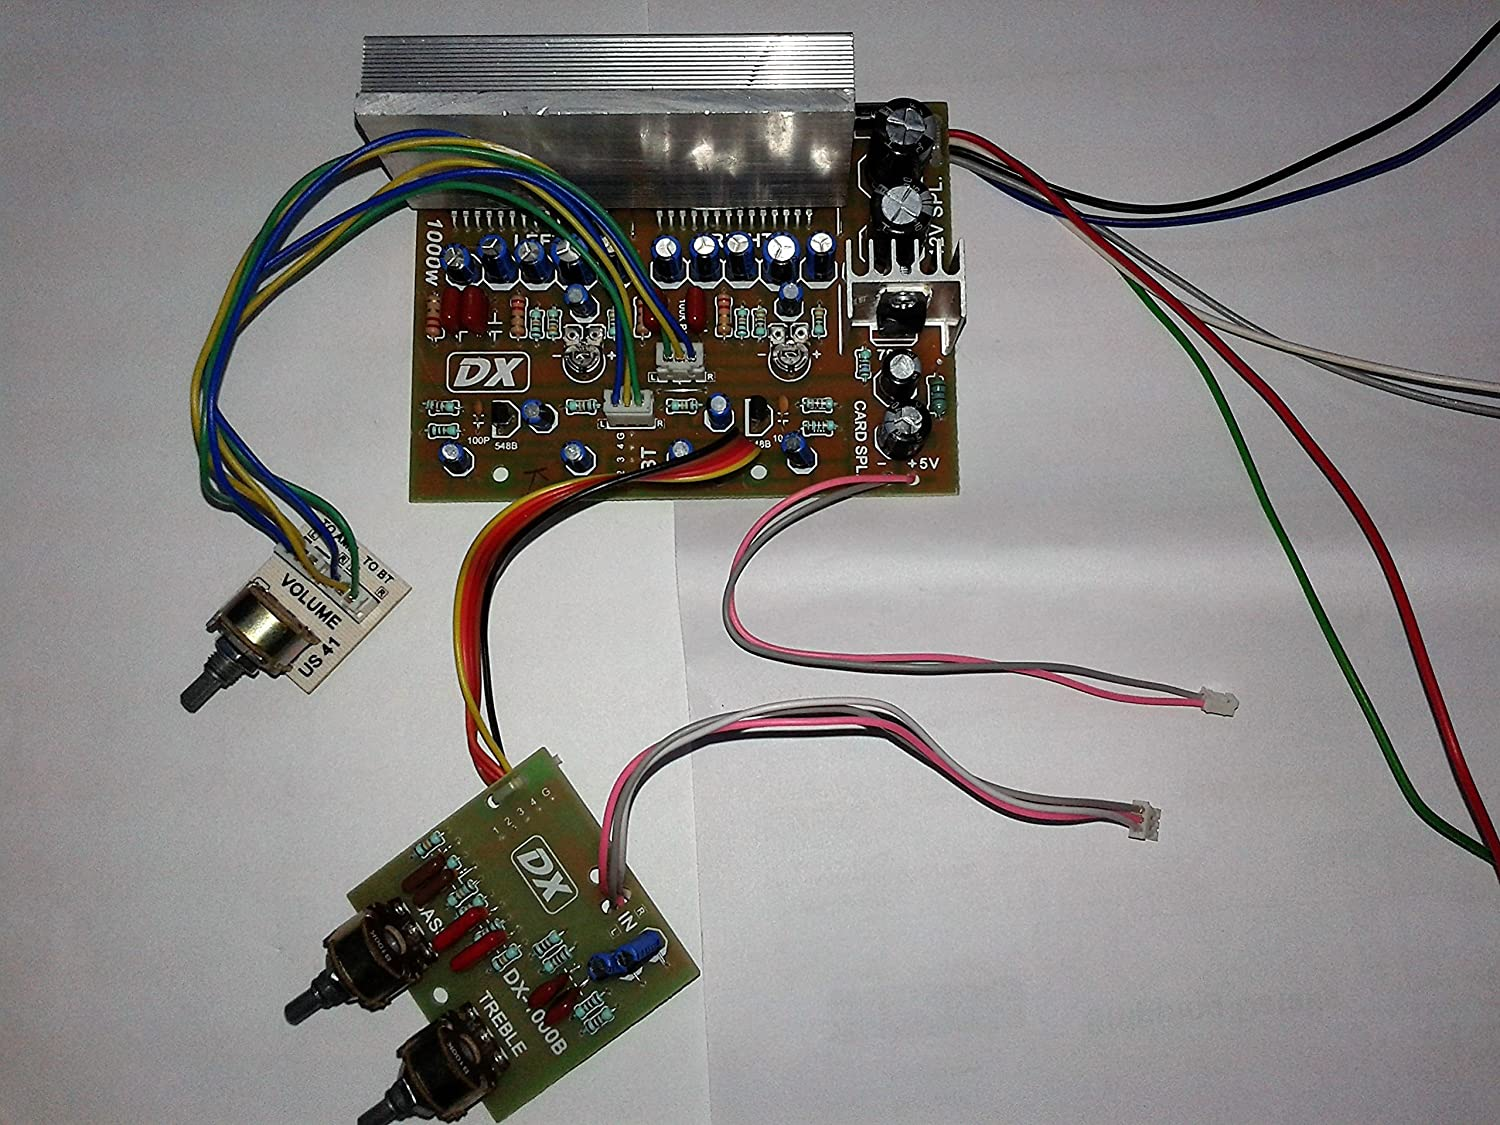 Salcon Electronics 4440 Audio Board, Sanyo IC Philips Capicator, Fully  Assembled Plug and Play